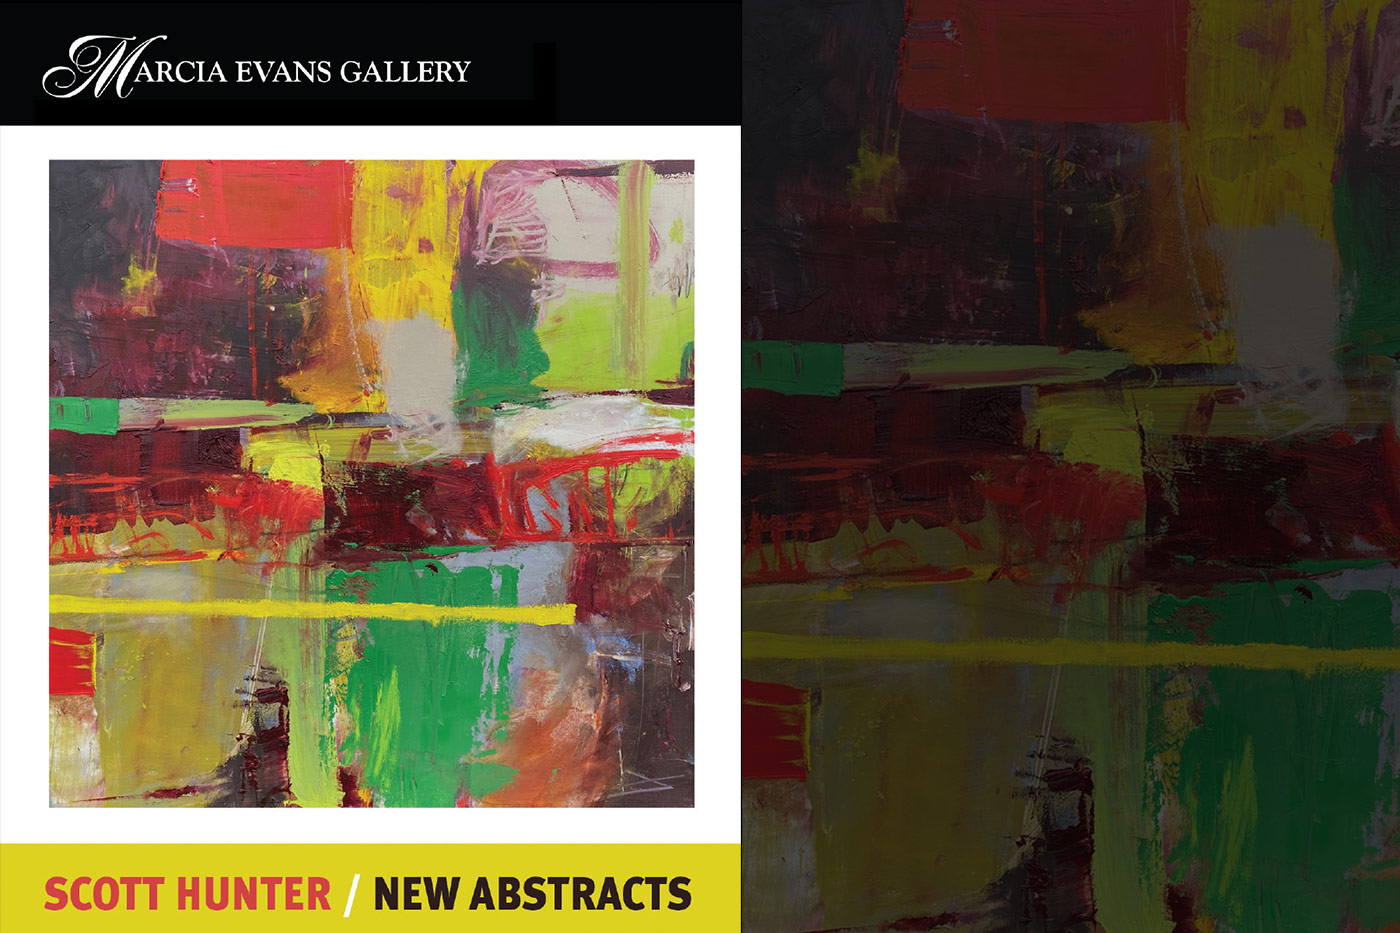 Scott Hunter, New Abstracts Gallery Show in the Short North